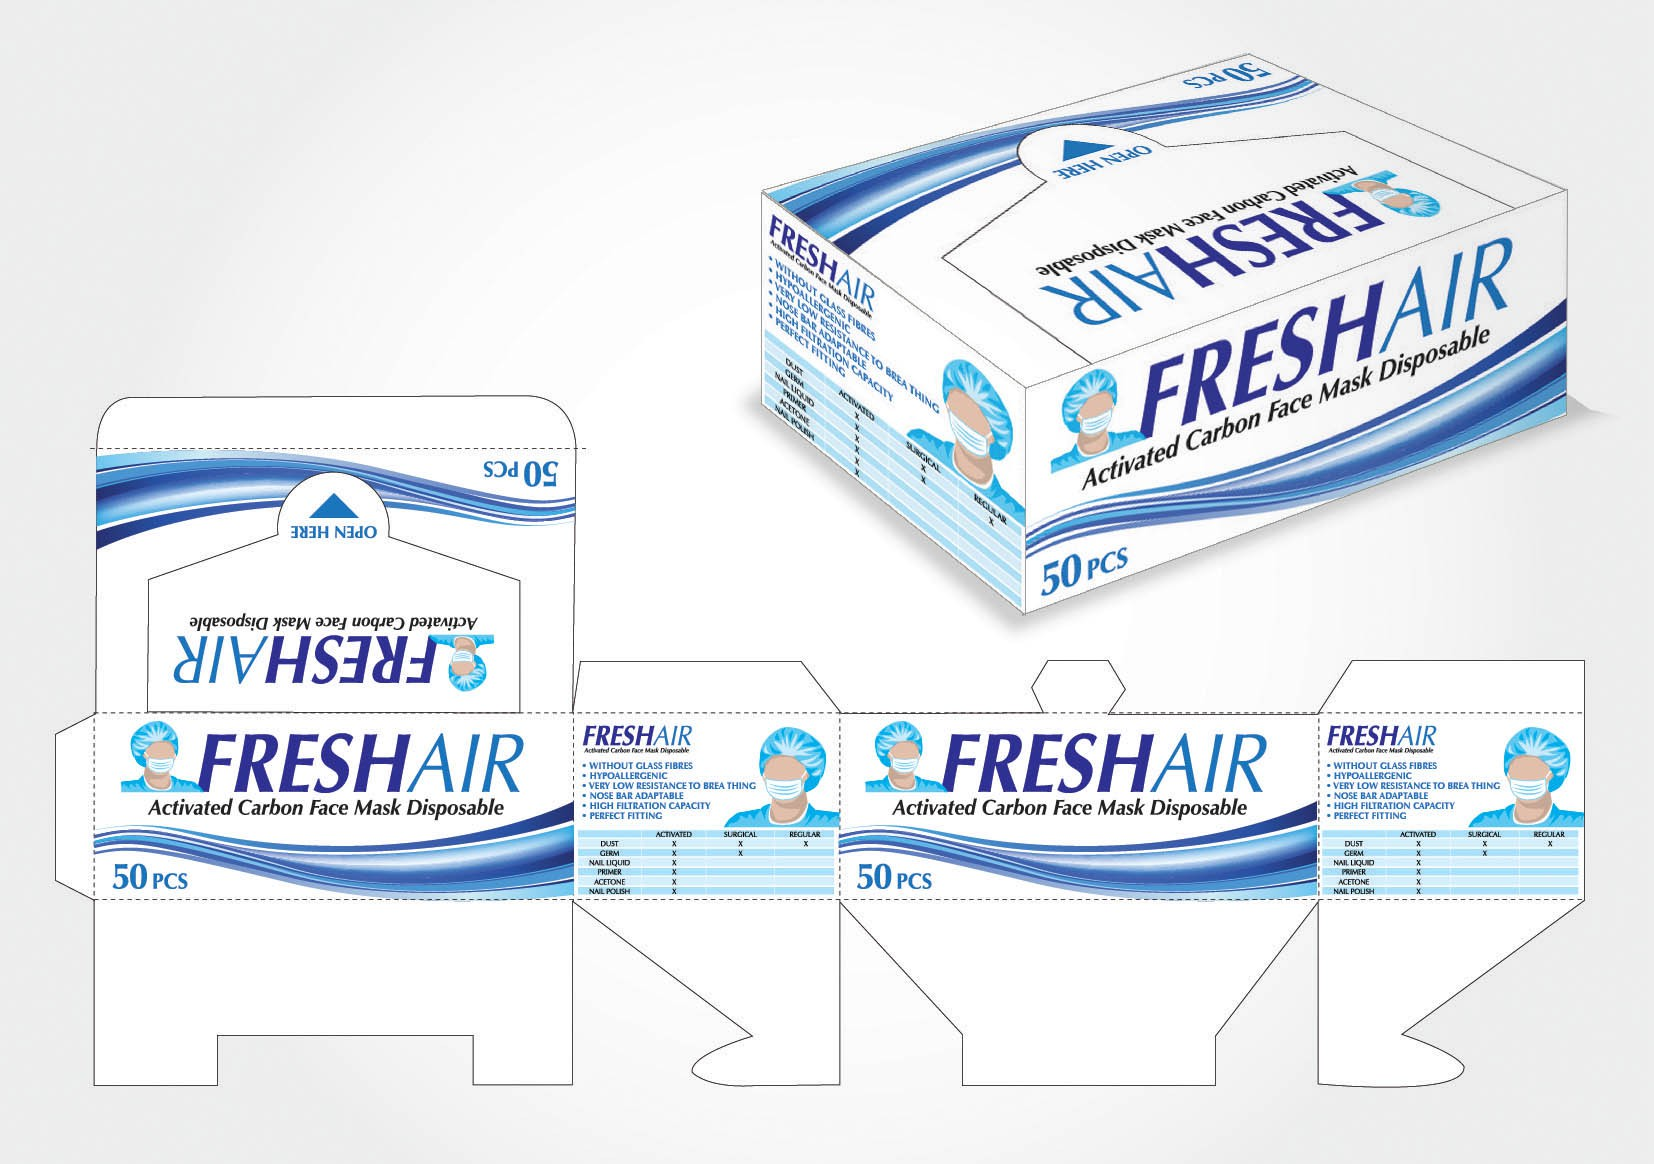 New product packaging wanted for FreshAir